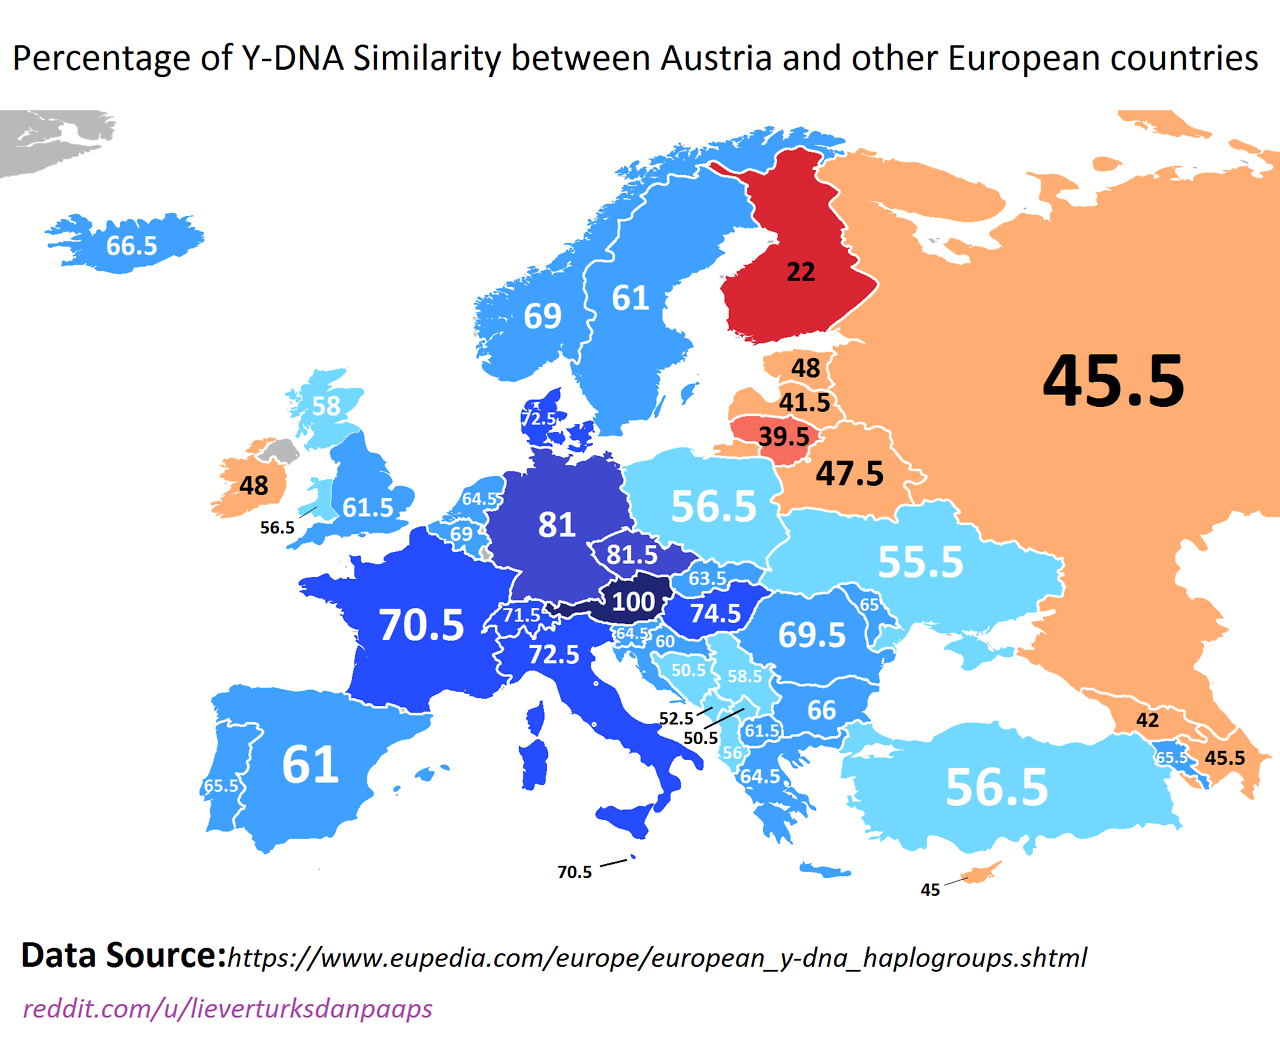 Y-DNA similarity between Austria and other European countries.